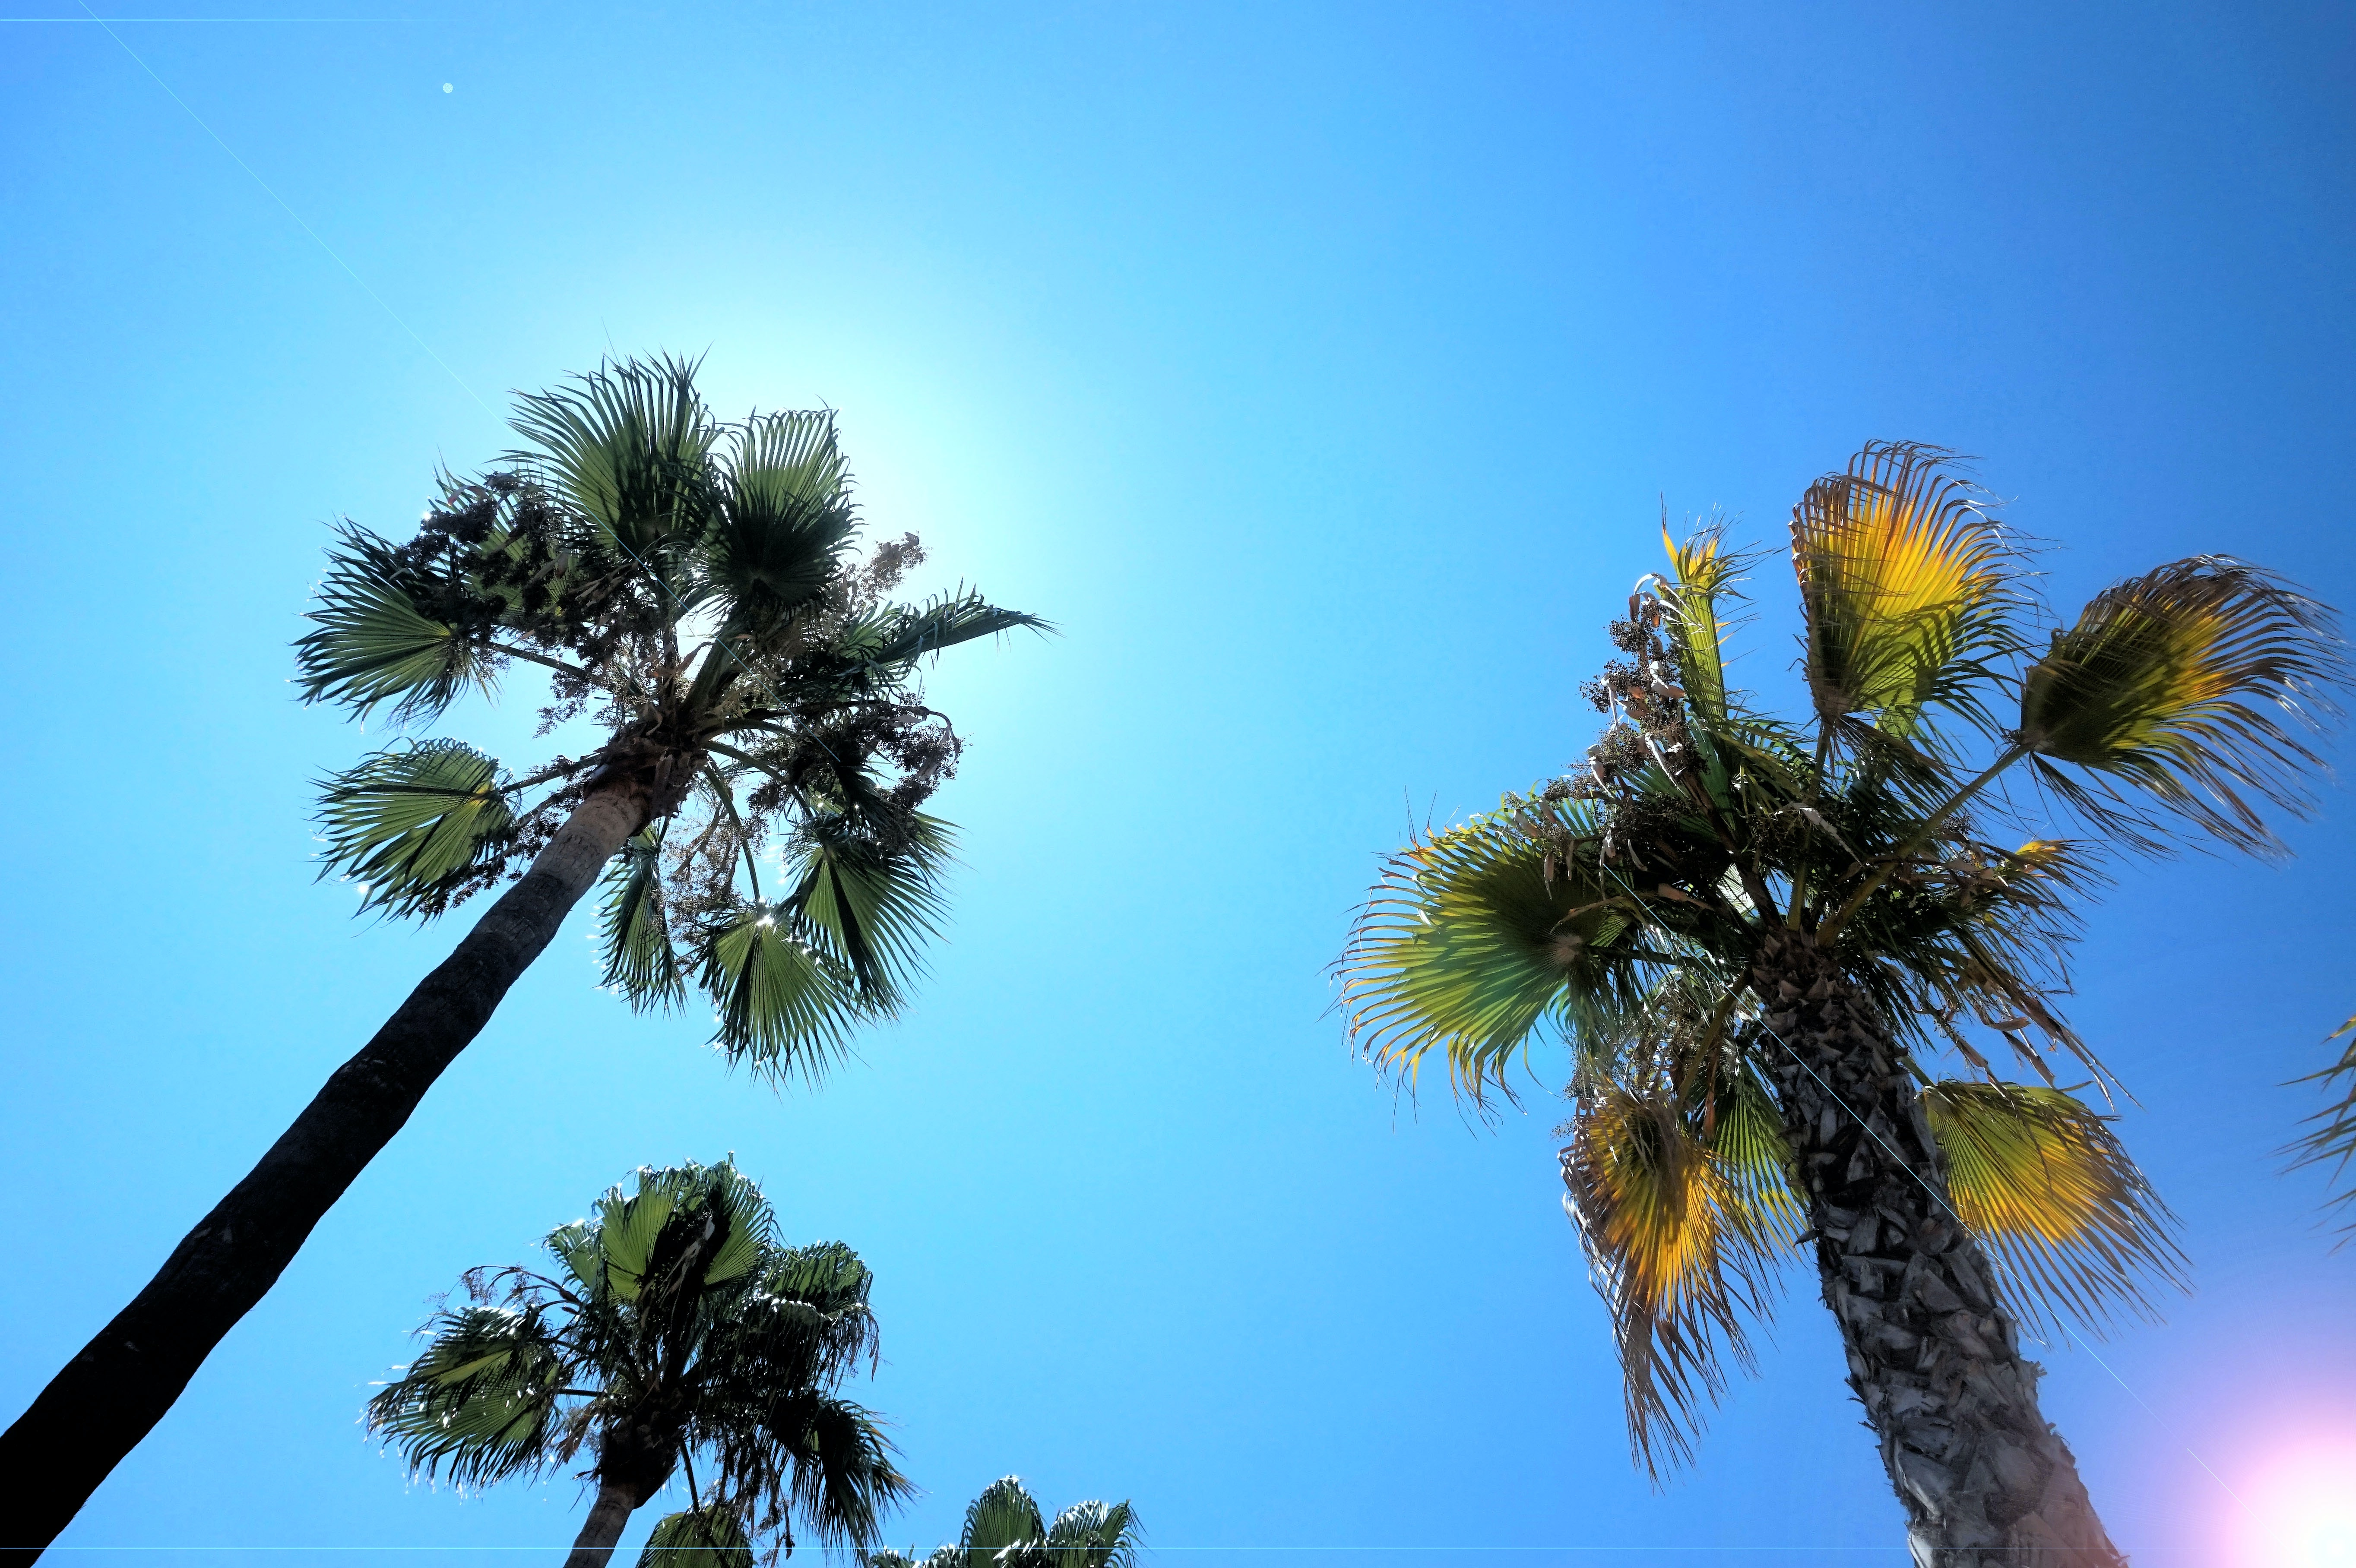 Looking up at a blue sunny sky and tall, green palm trees in Majorca